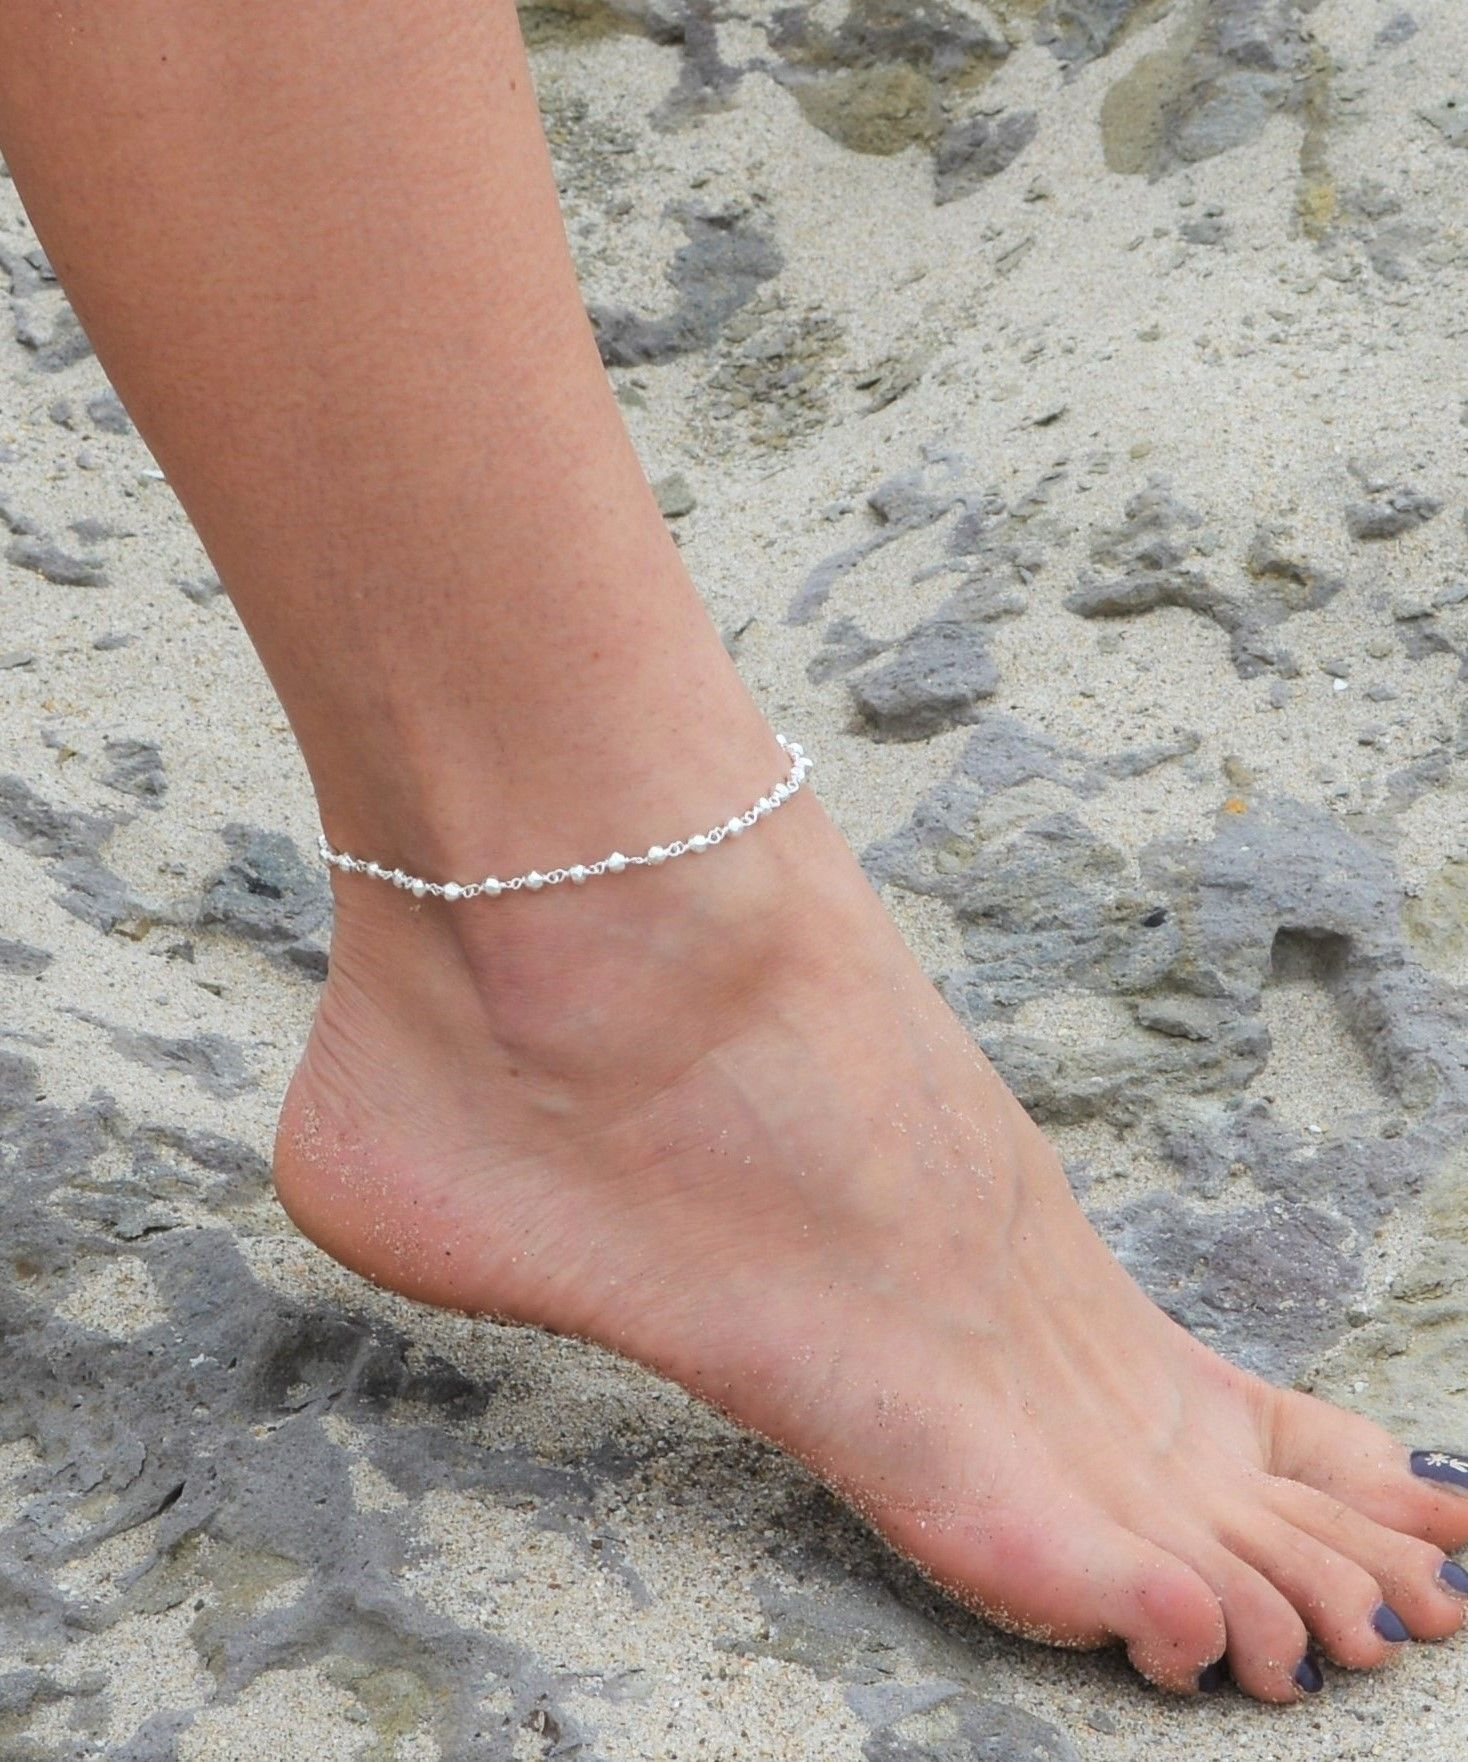 bracelet ankle designs hotwife carolyn anklet sterling made nicole by custom name carolynnicole silver bracelets gold